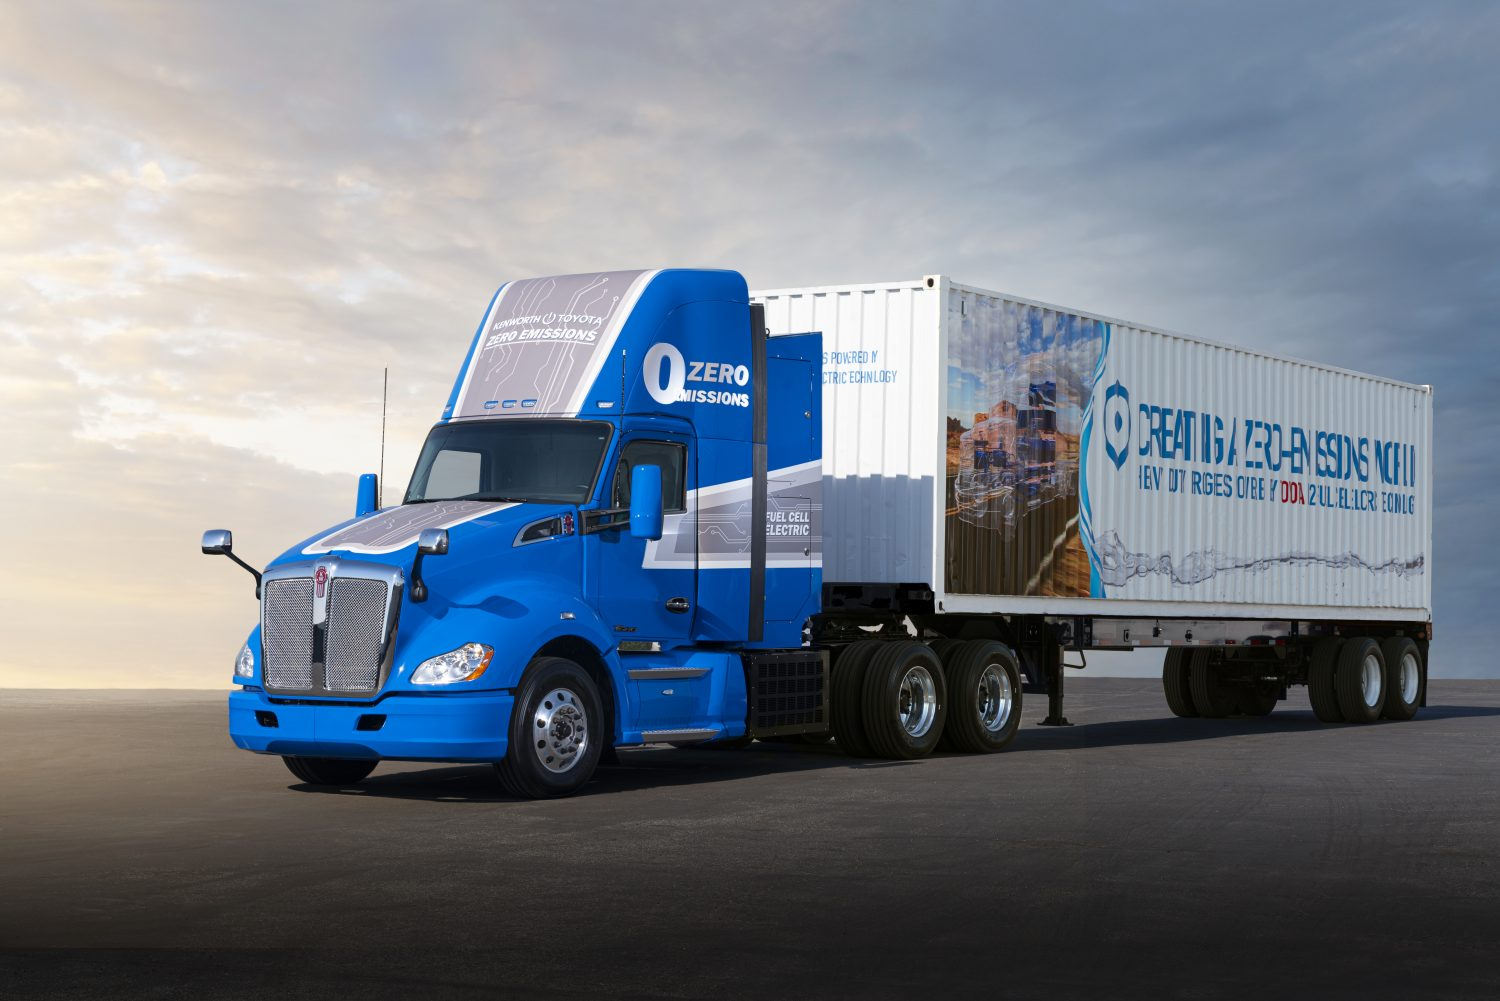 Toyota Moves Closer to Production with Next Generation Fuel Cell Electric Technology for Zero-Emissions Heavy Duty Trucks Brandspurng